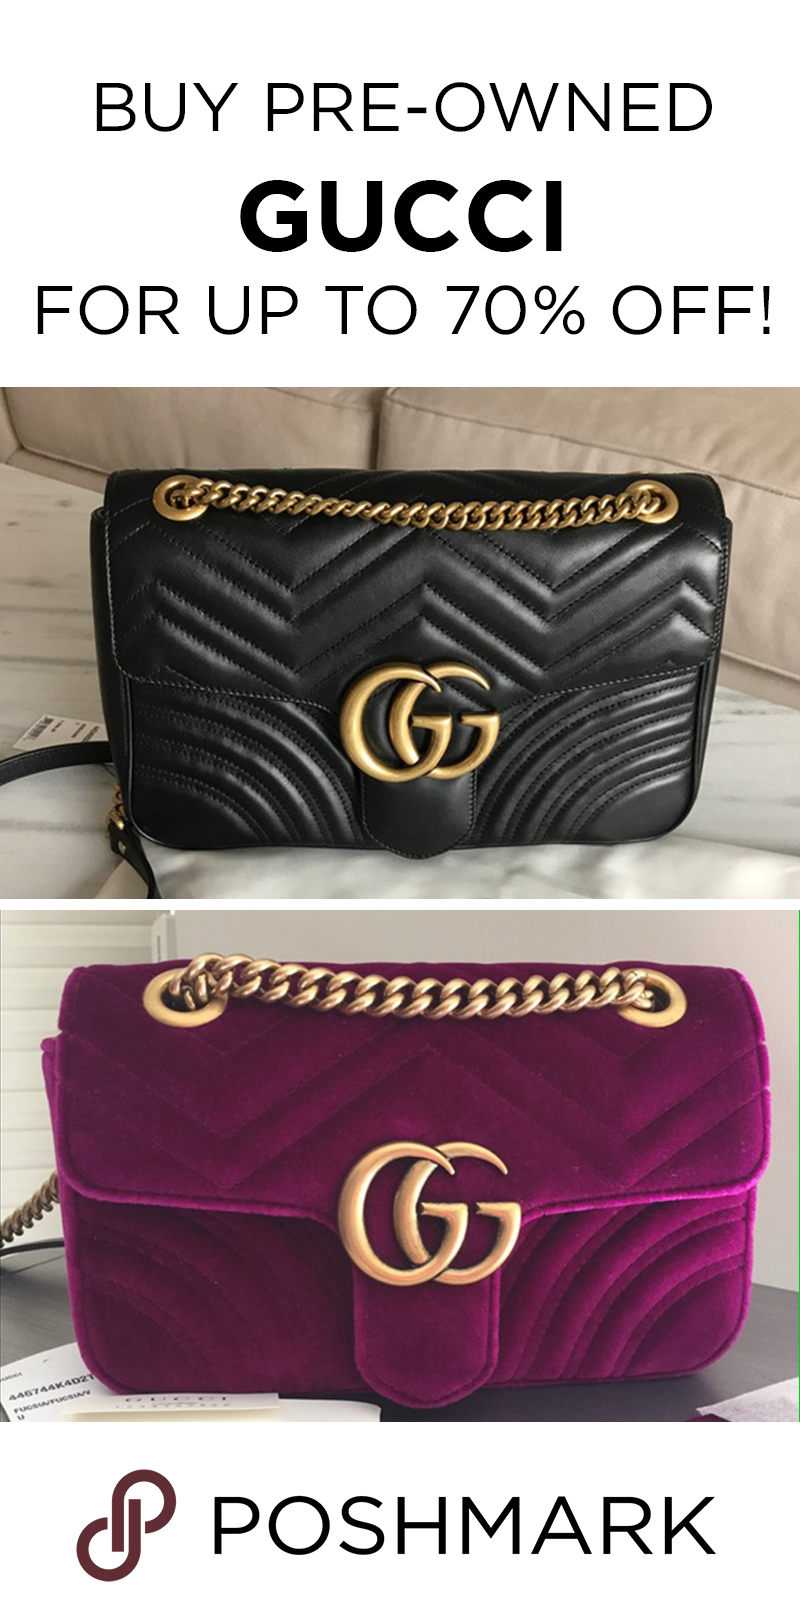 Find Authentic Gucci Bags Up To 70 Off On Poshmark